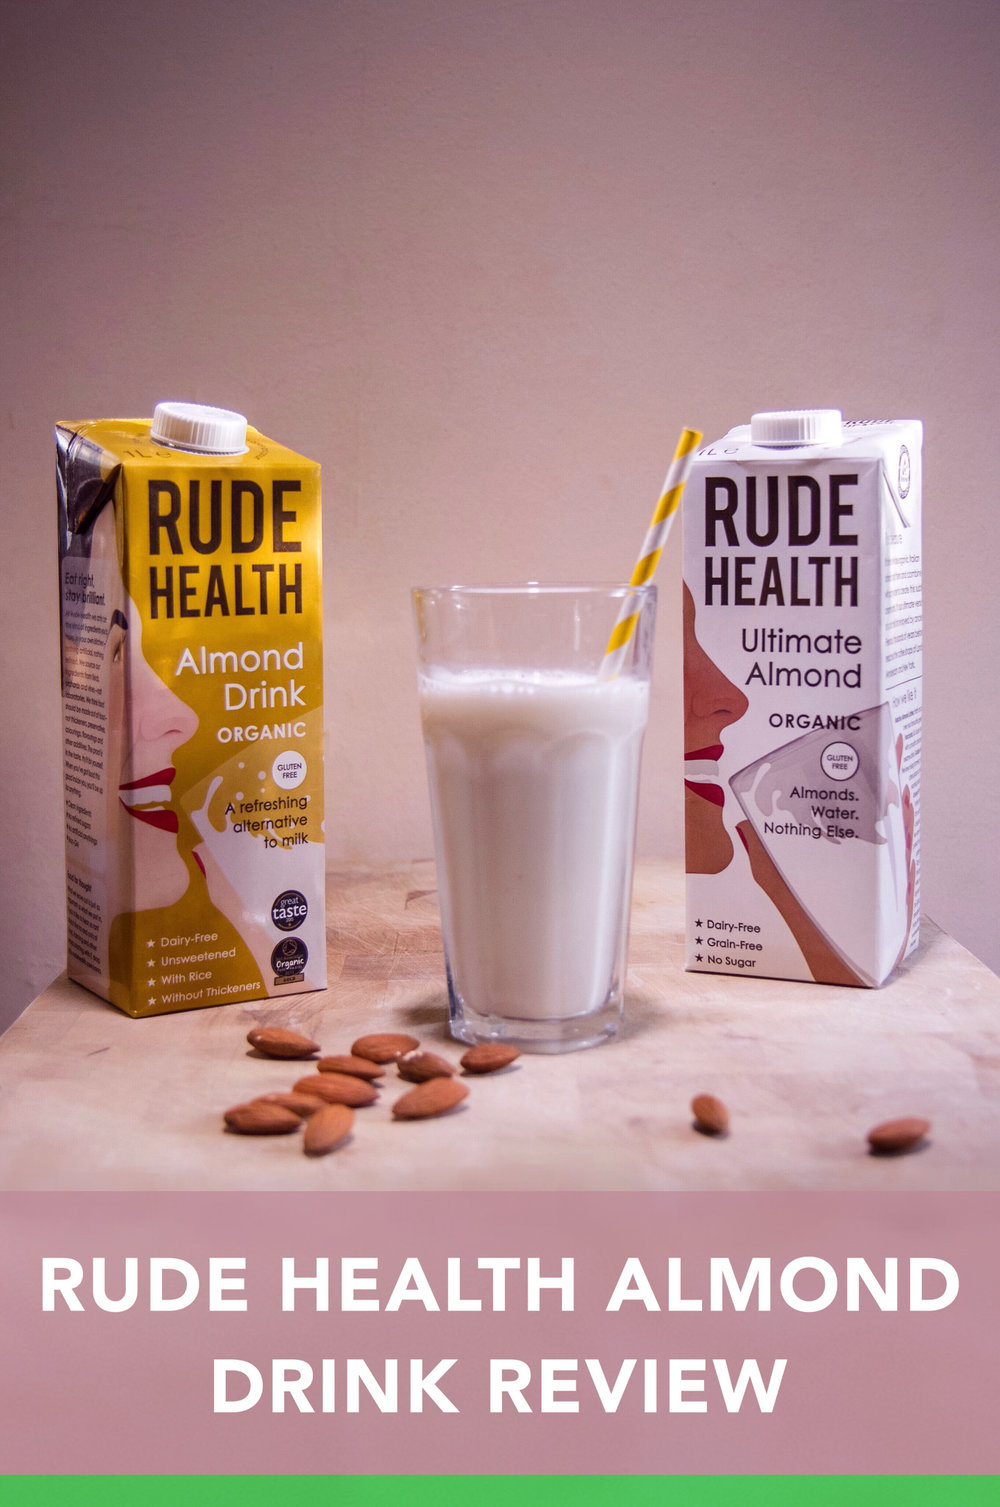 rude health almond drink review